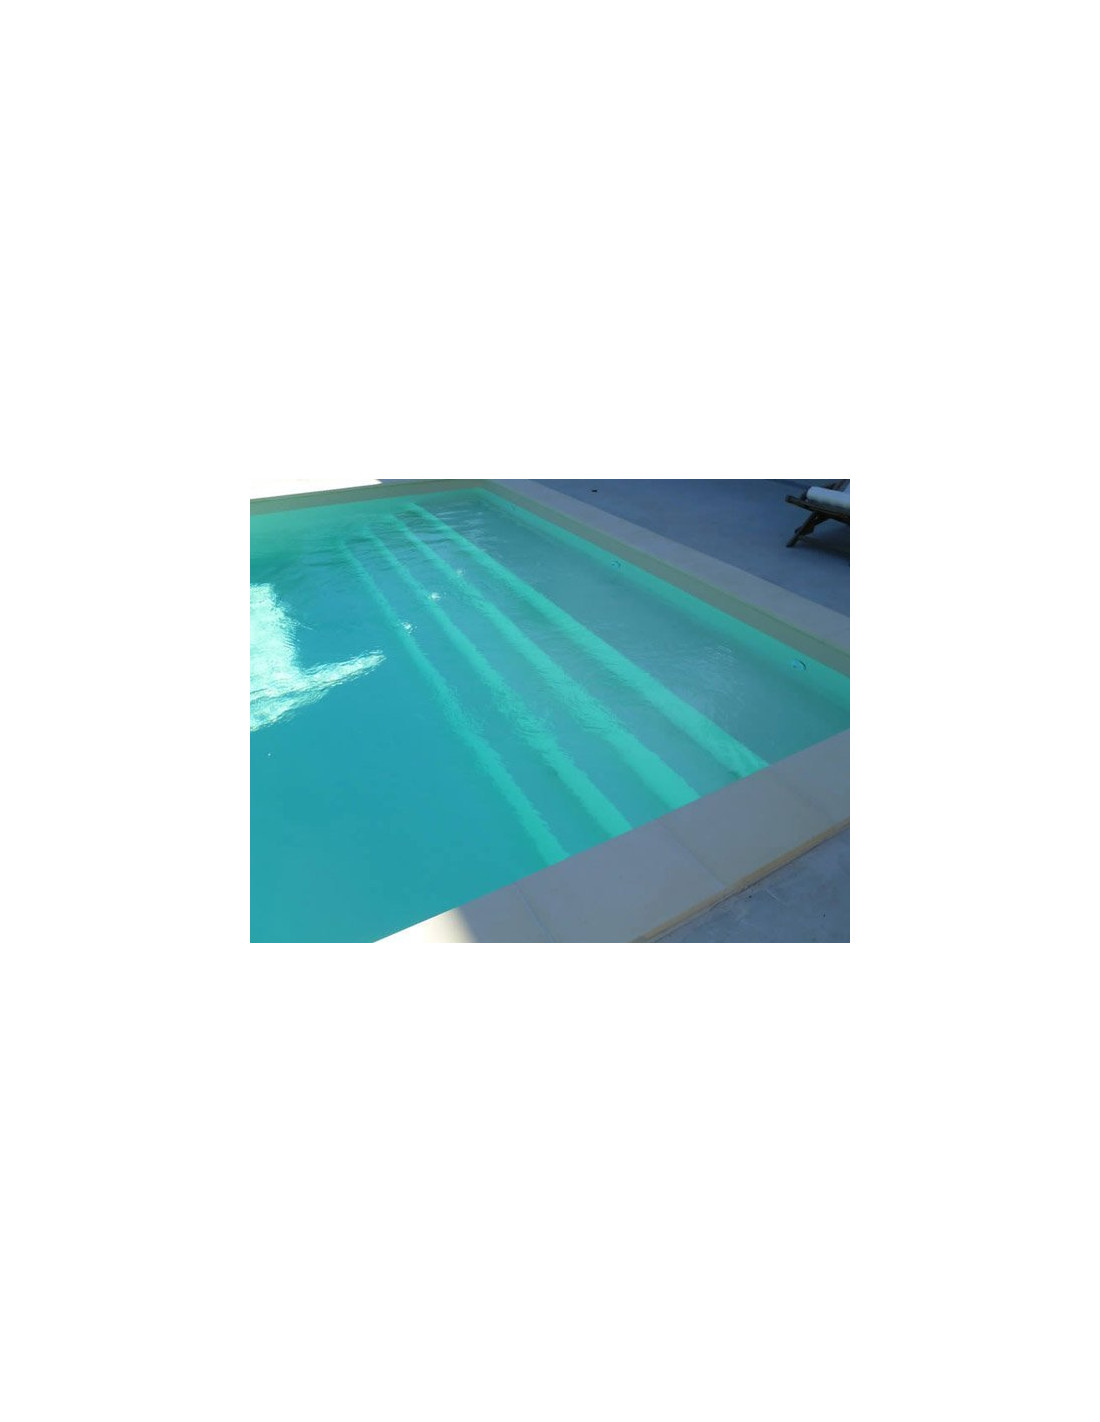 Kit piscine enterr e avec escalier modulo for Piscine enterree en kit